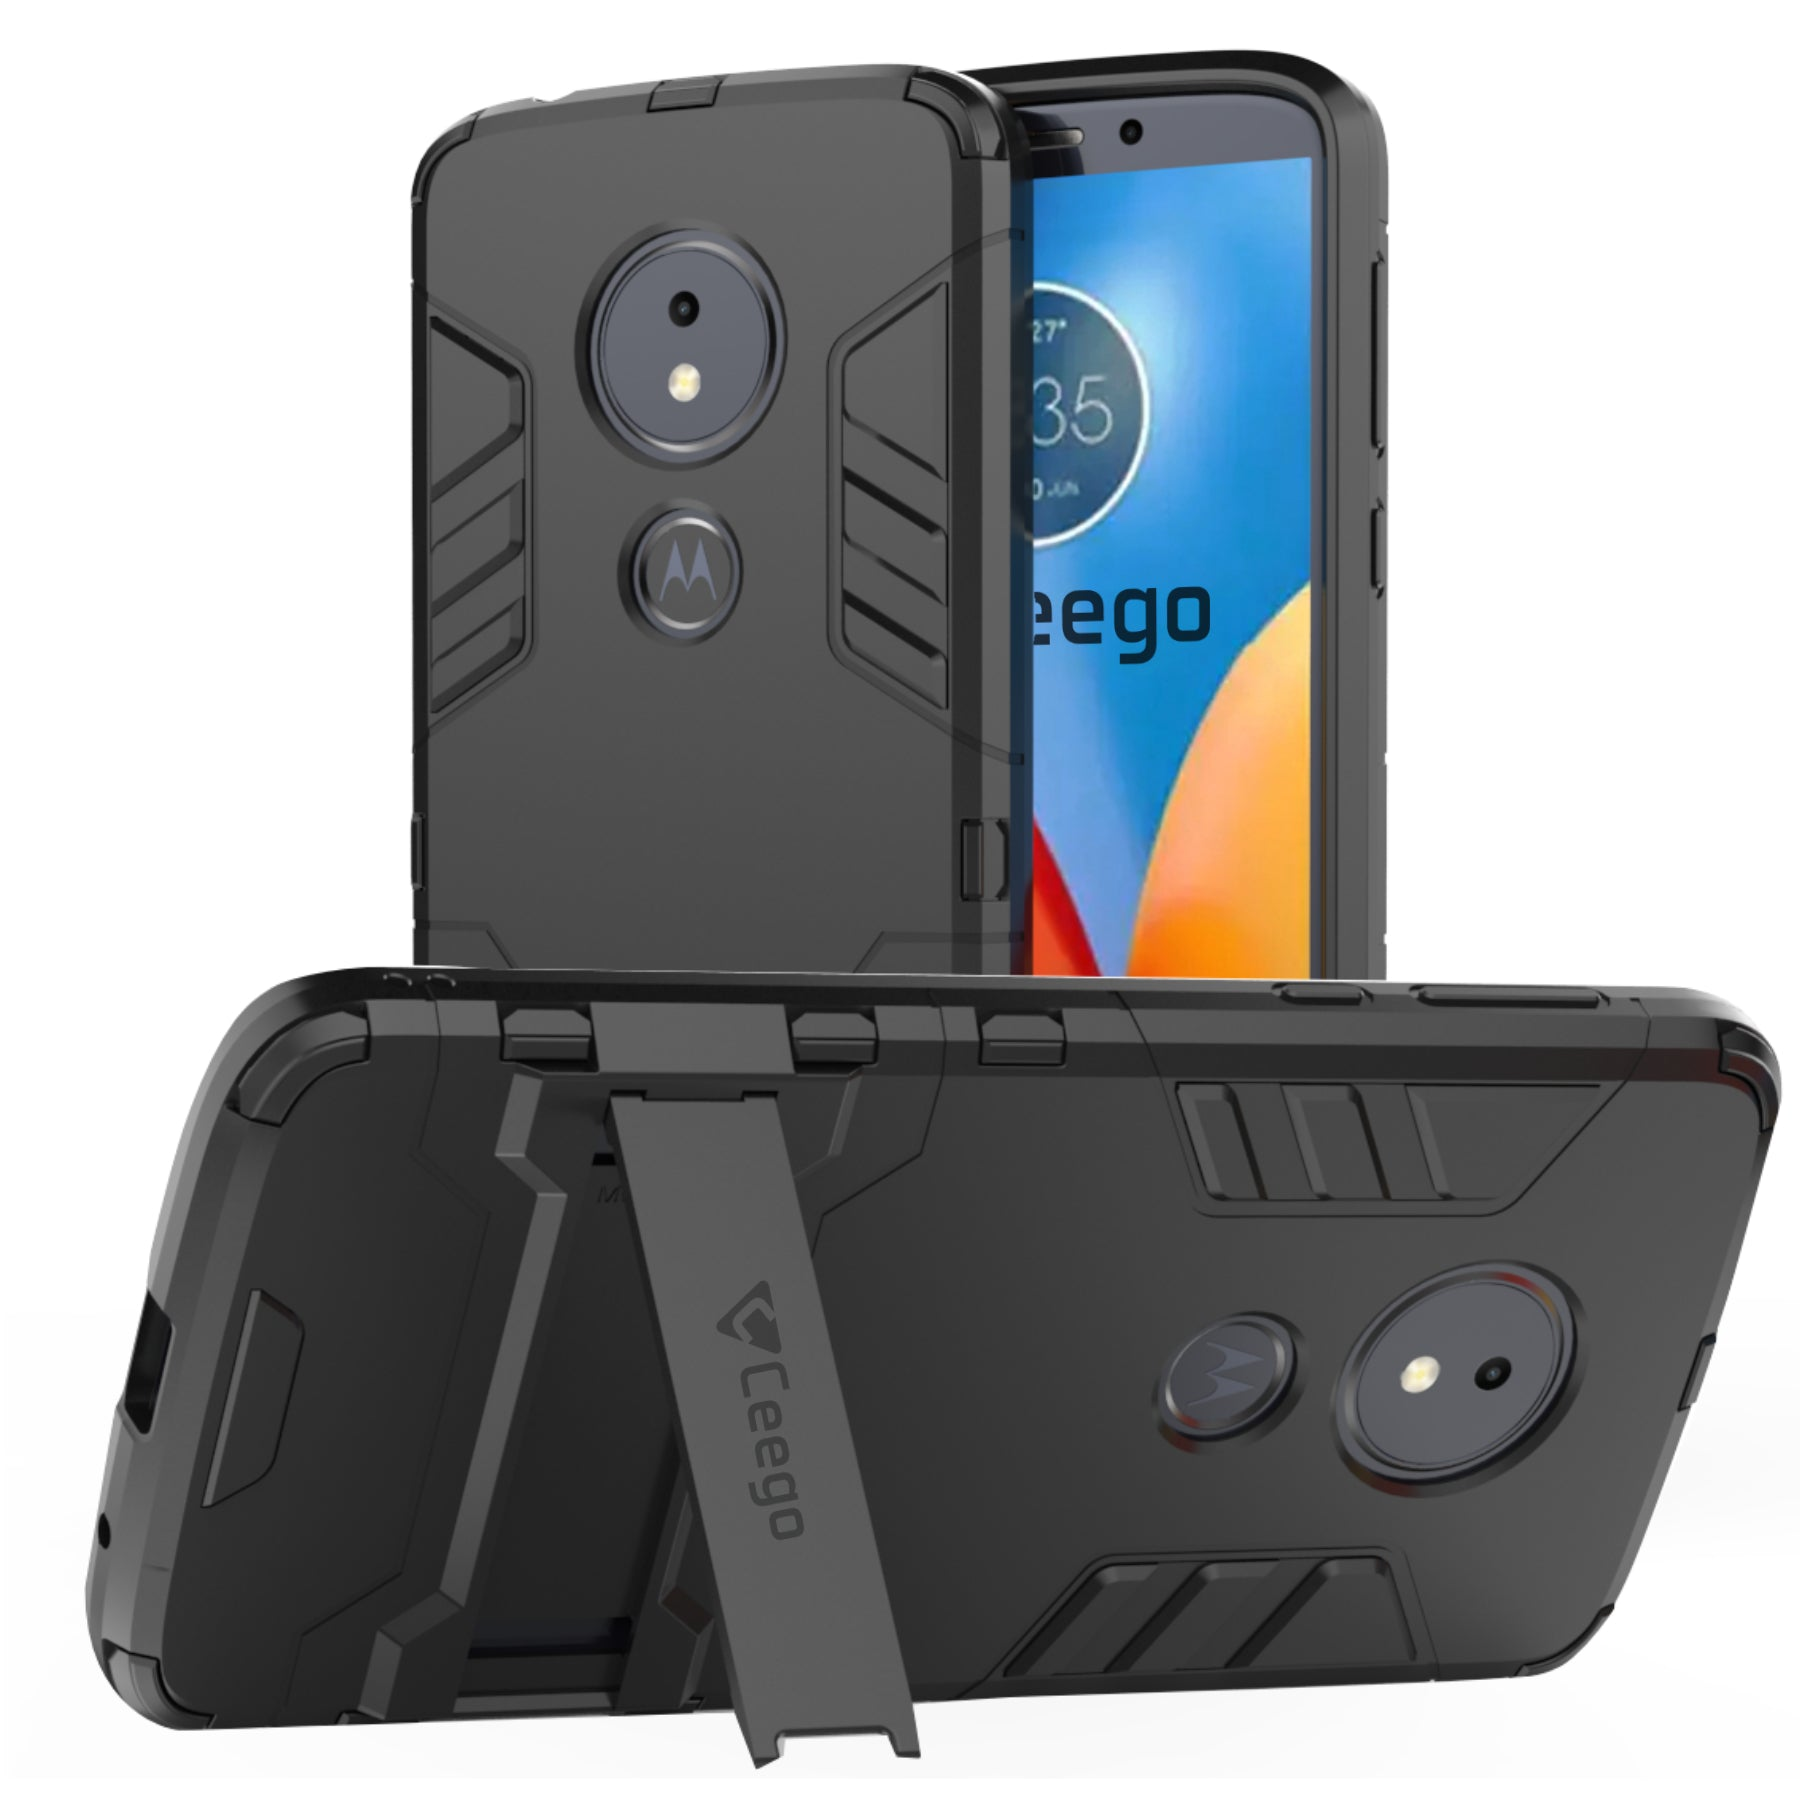 Ceego Stealth Defence Back Case for Moto G6 Play  – Matte Black